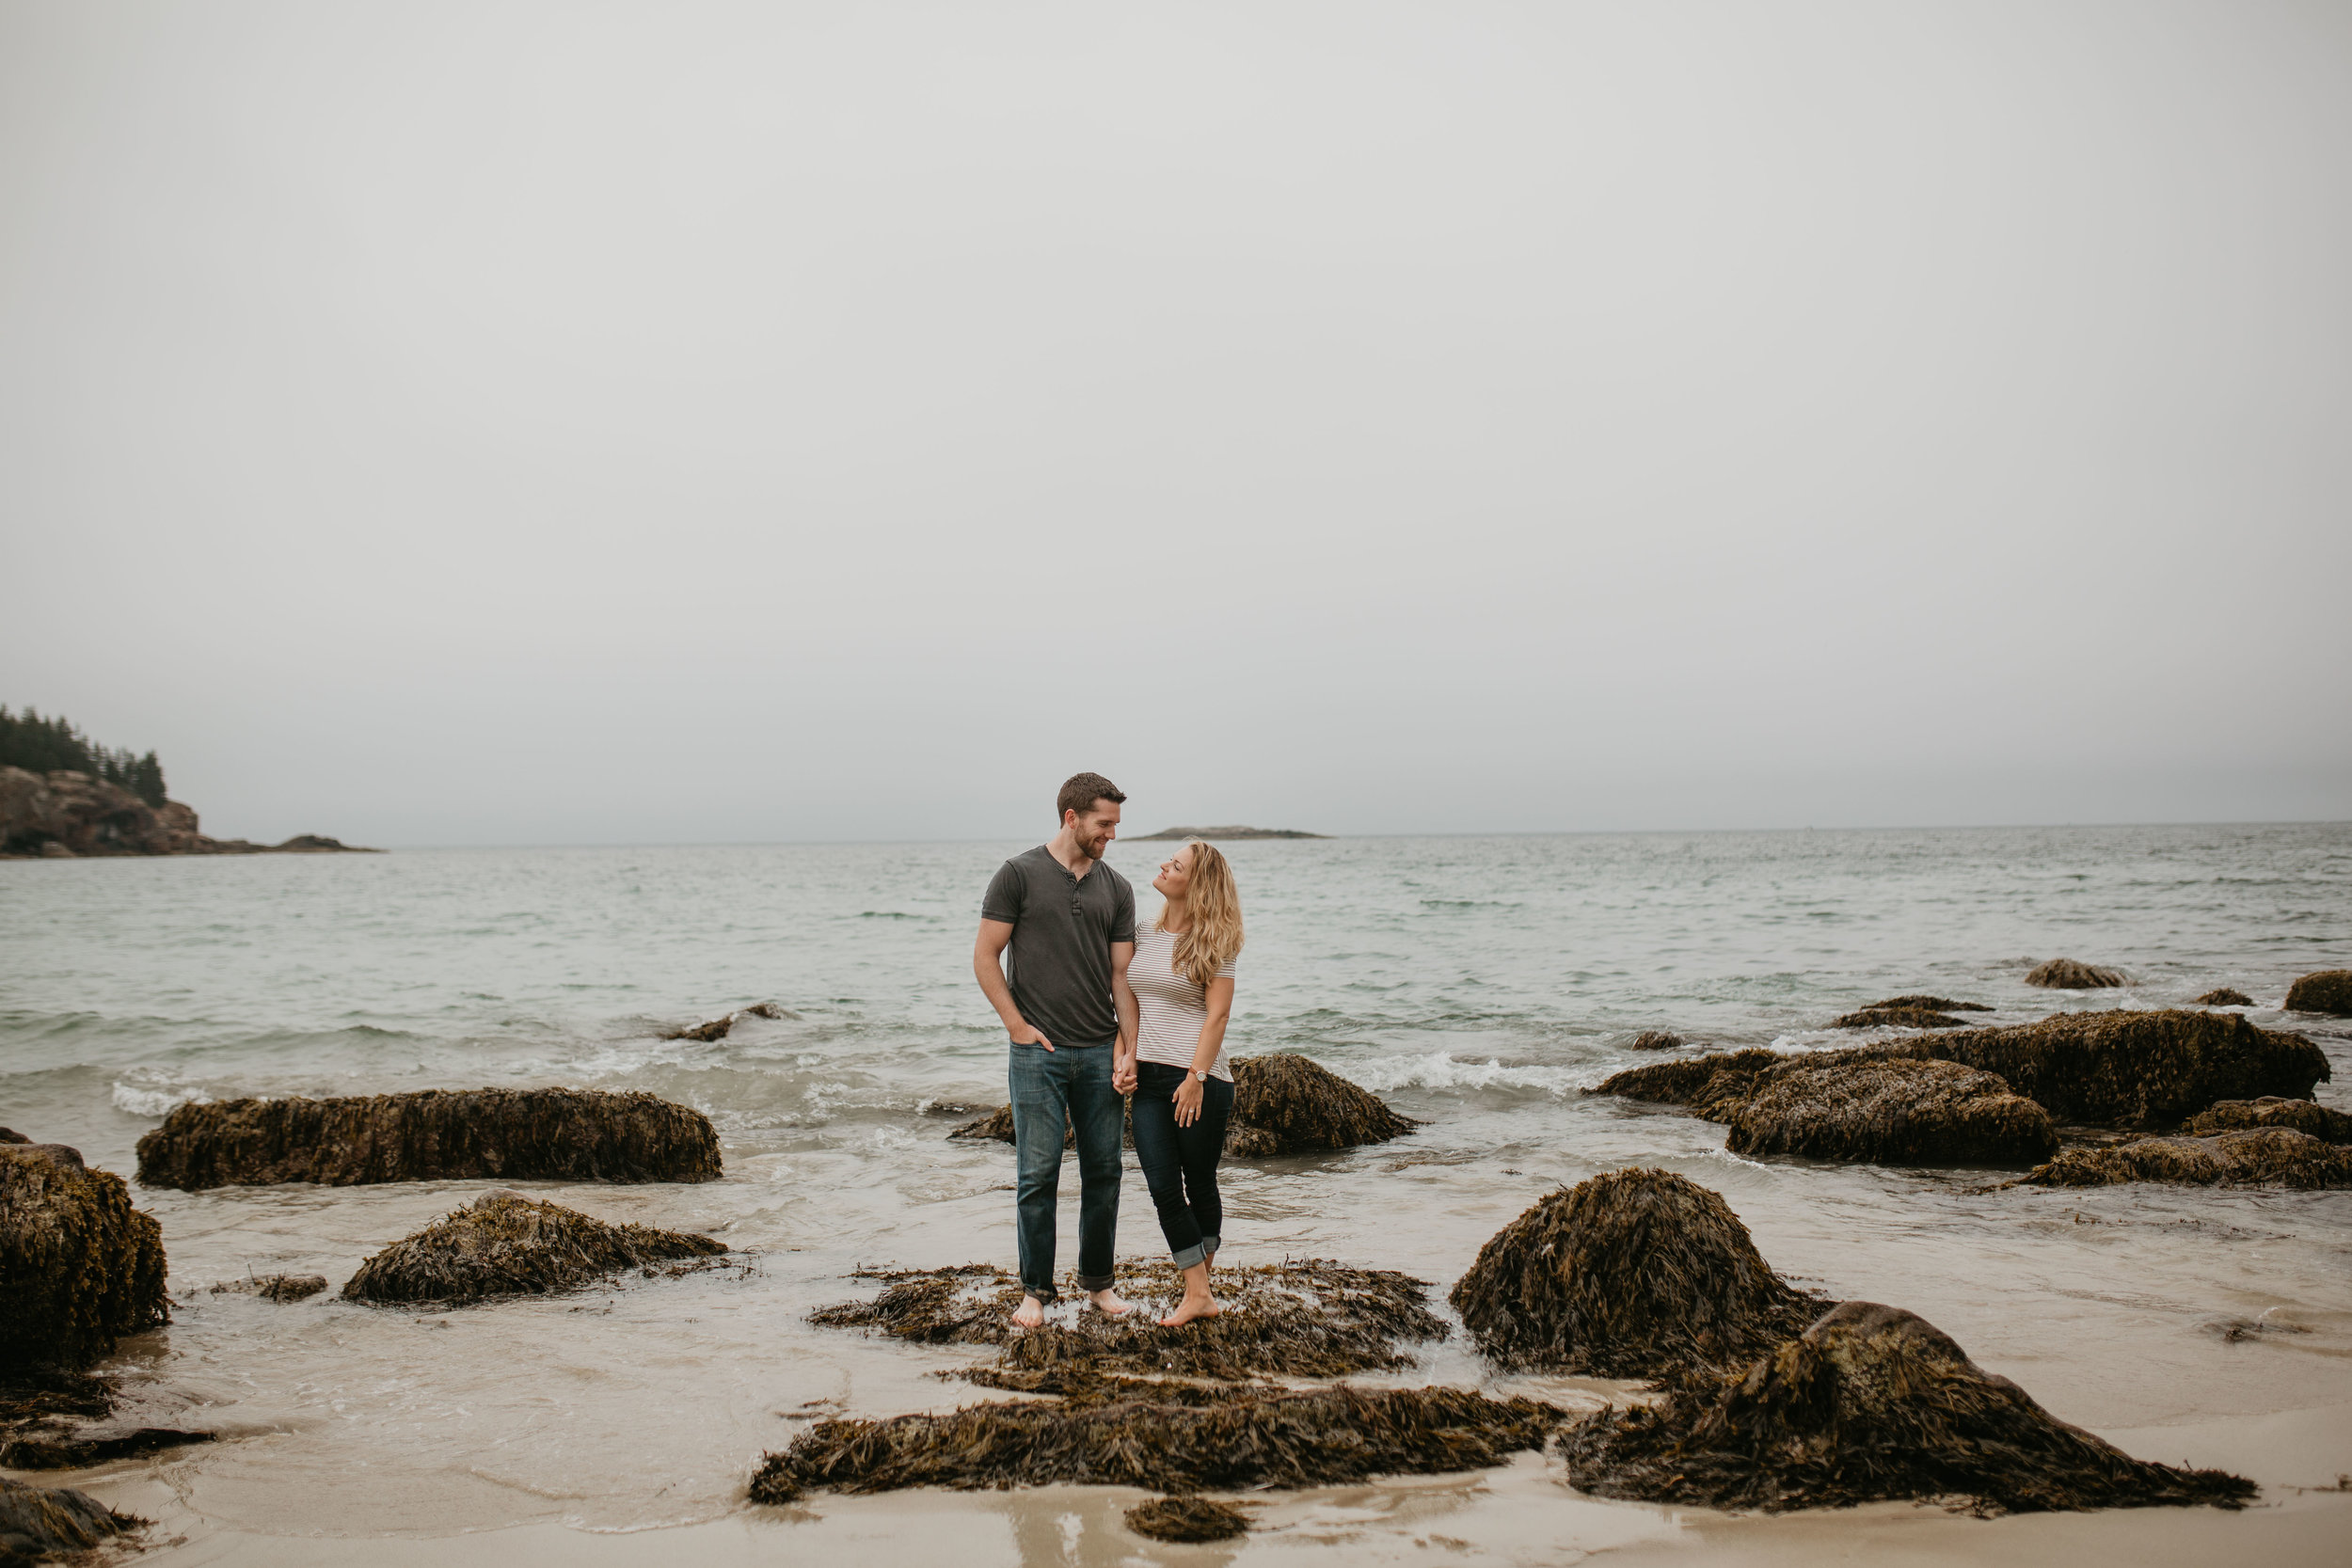 nicole-daacke-photography-acadia-national-park-adventurous-engagement-session-photos-otter-cliffs-forests-coastline-sand-beach-adventure-session-bar-harbor-mt-desert-island-elopement-fall-bass-harbor-lighthouse-wedding-maine-landscape-photographer-17.jpg